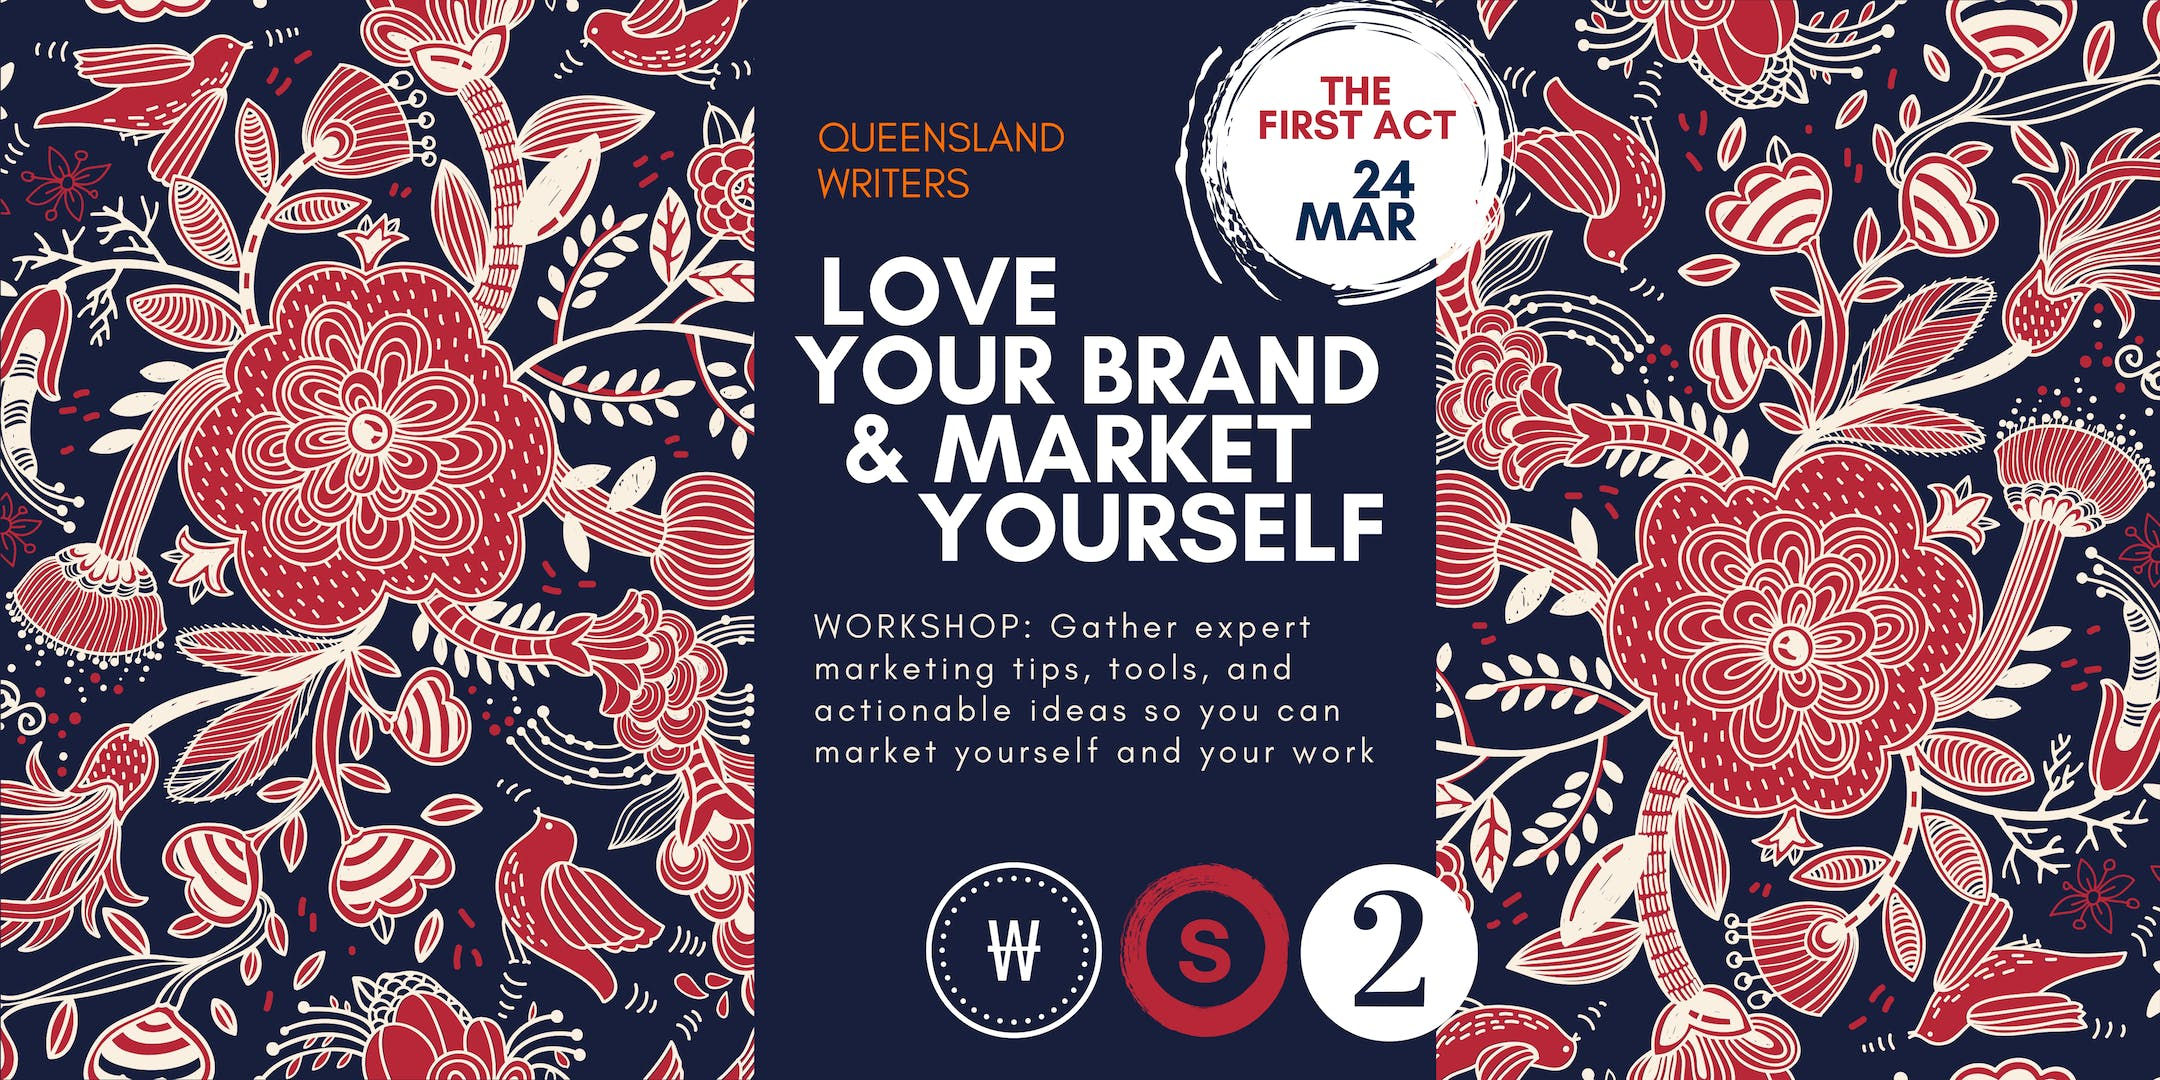 Love Your Brand: Marketing Yourself As an Aut